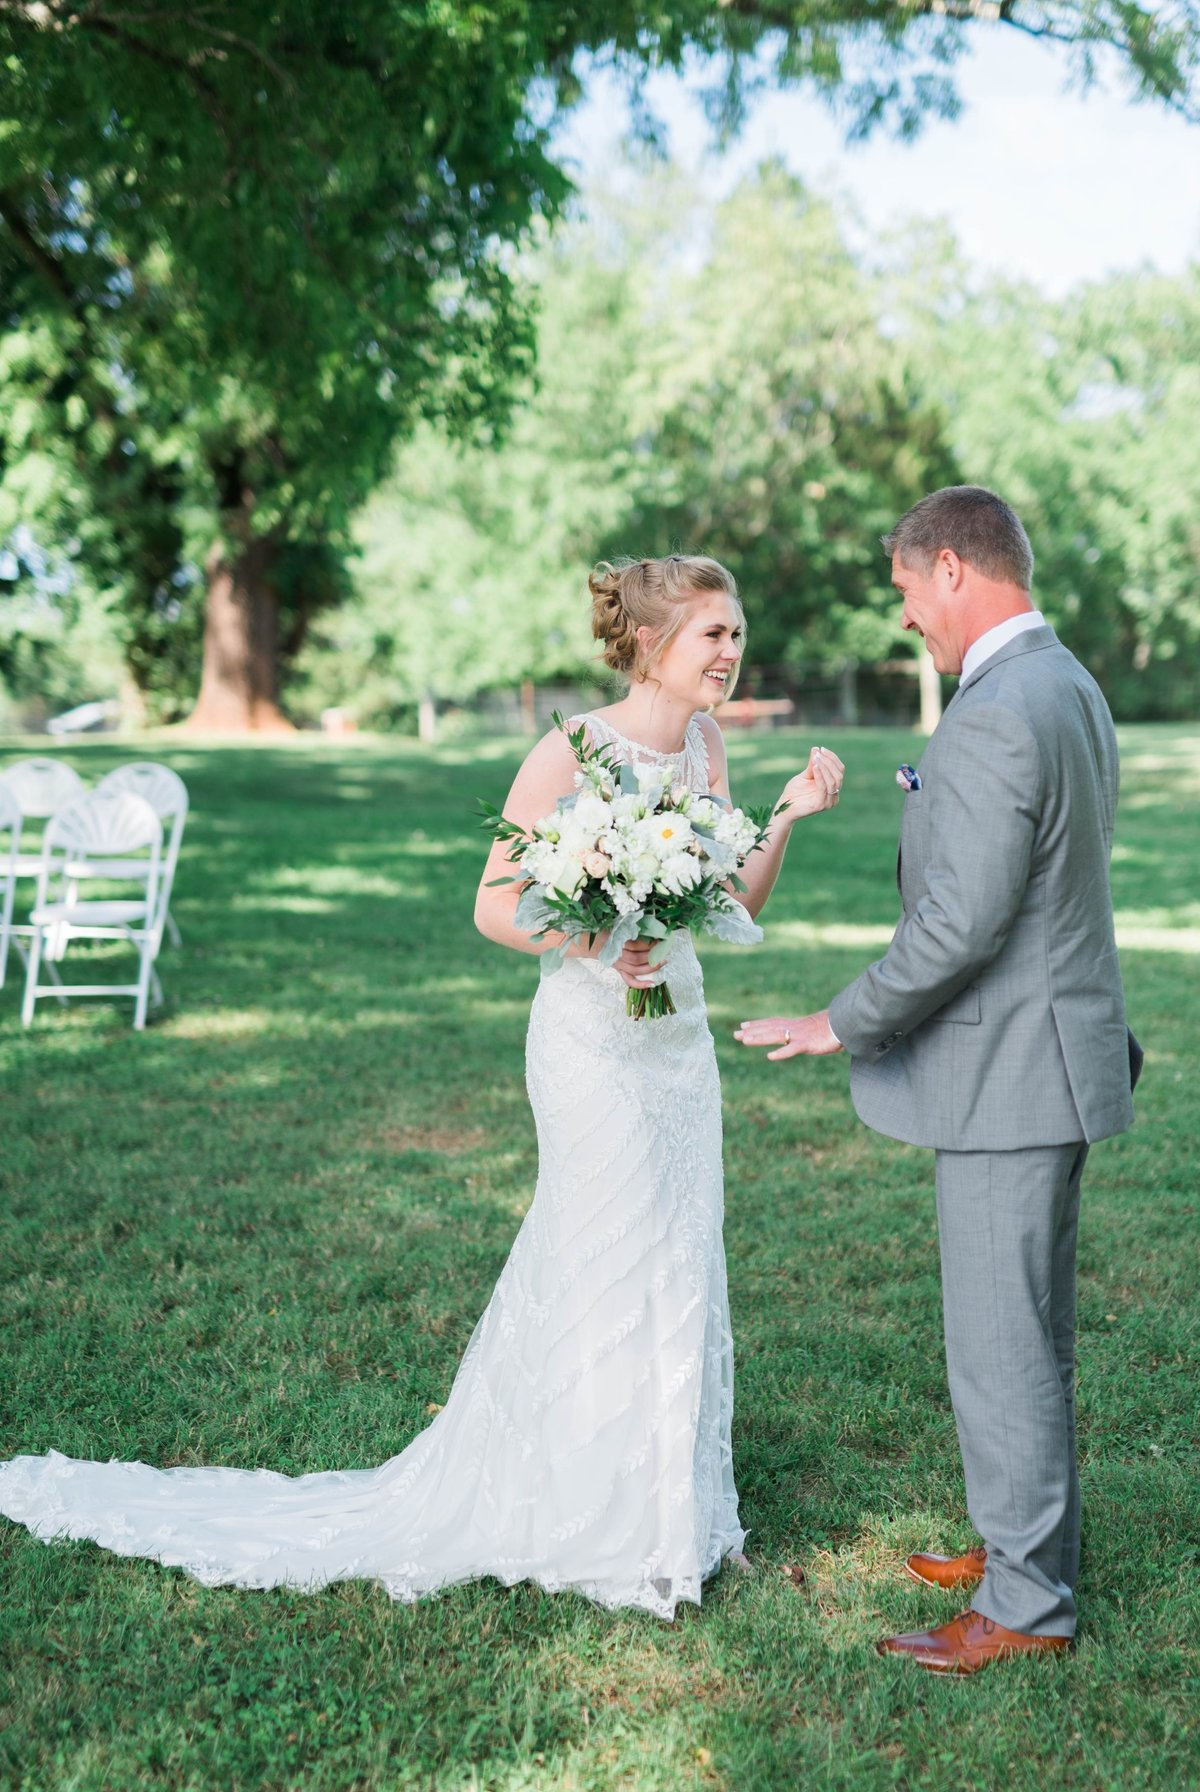 SorellaFarms_VirginiaWeddingPhotographer_BarnWedding_Lynchburgweddingphotographer_DanielleTyler+30(1)